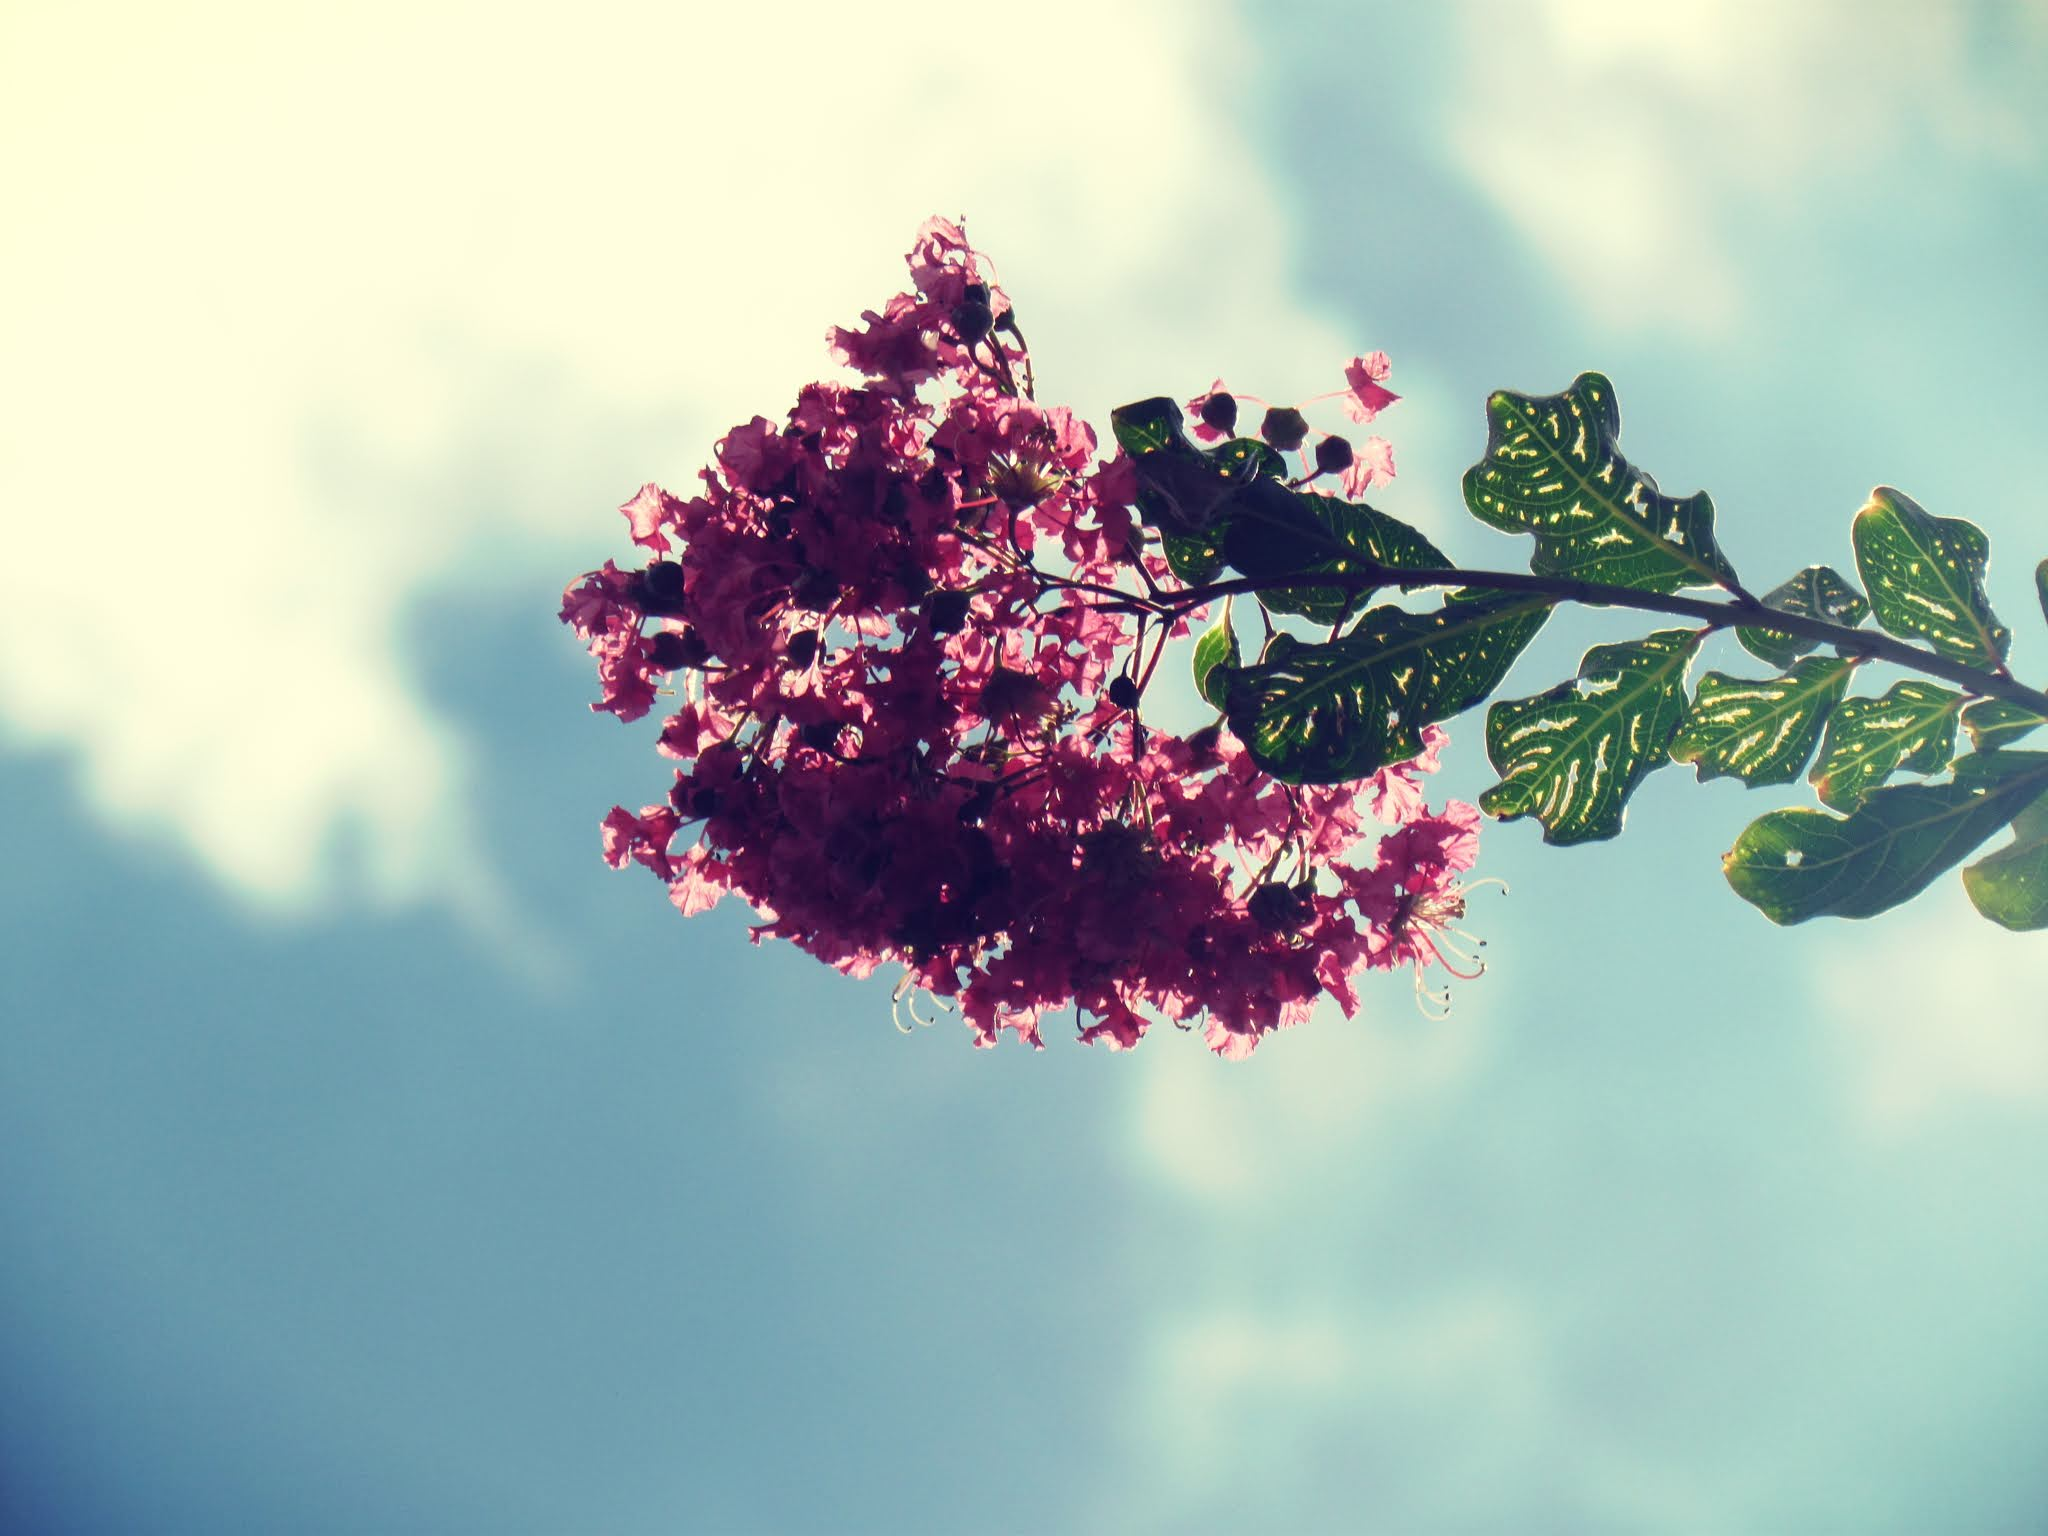 A flowering tree, dogwood trees in Florida, blue skies, whimsical cloud shapes, nature blueprint